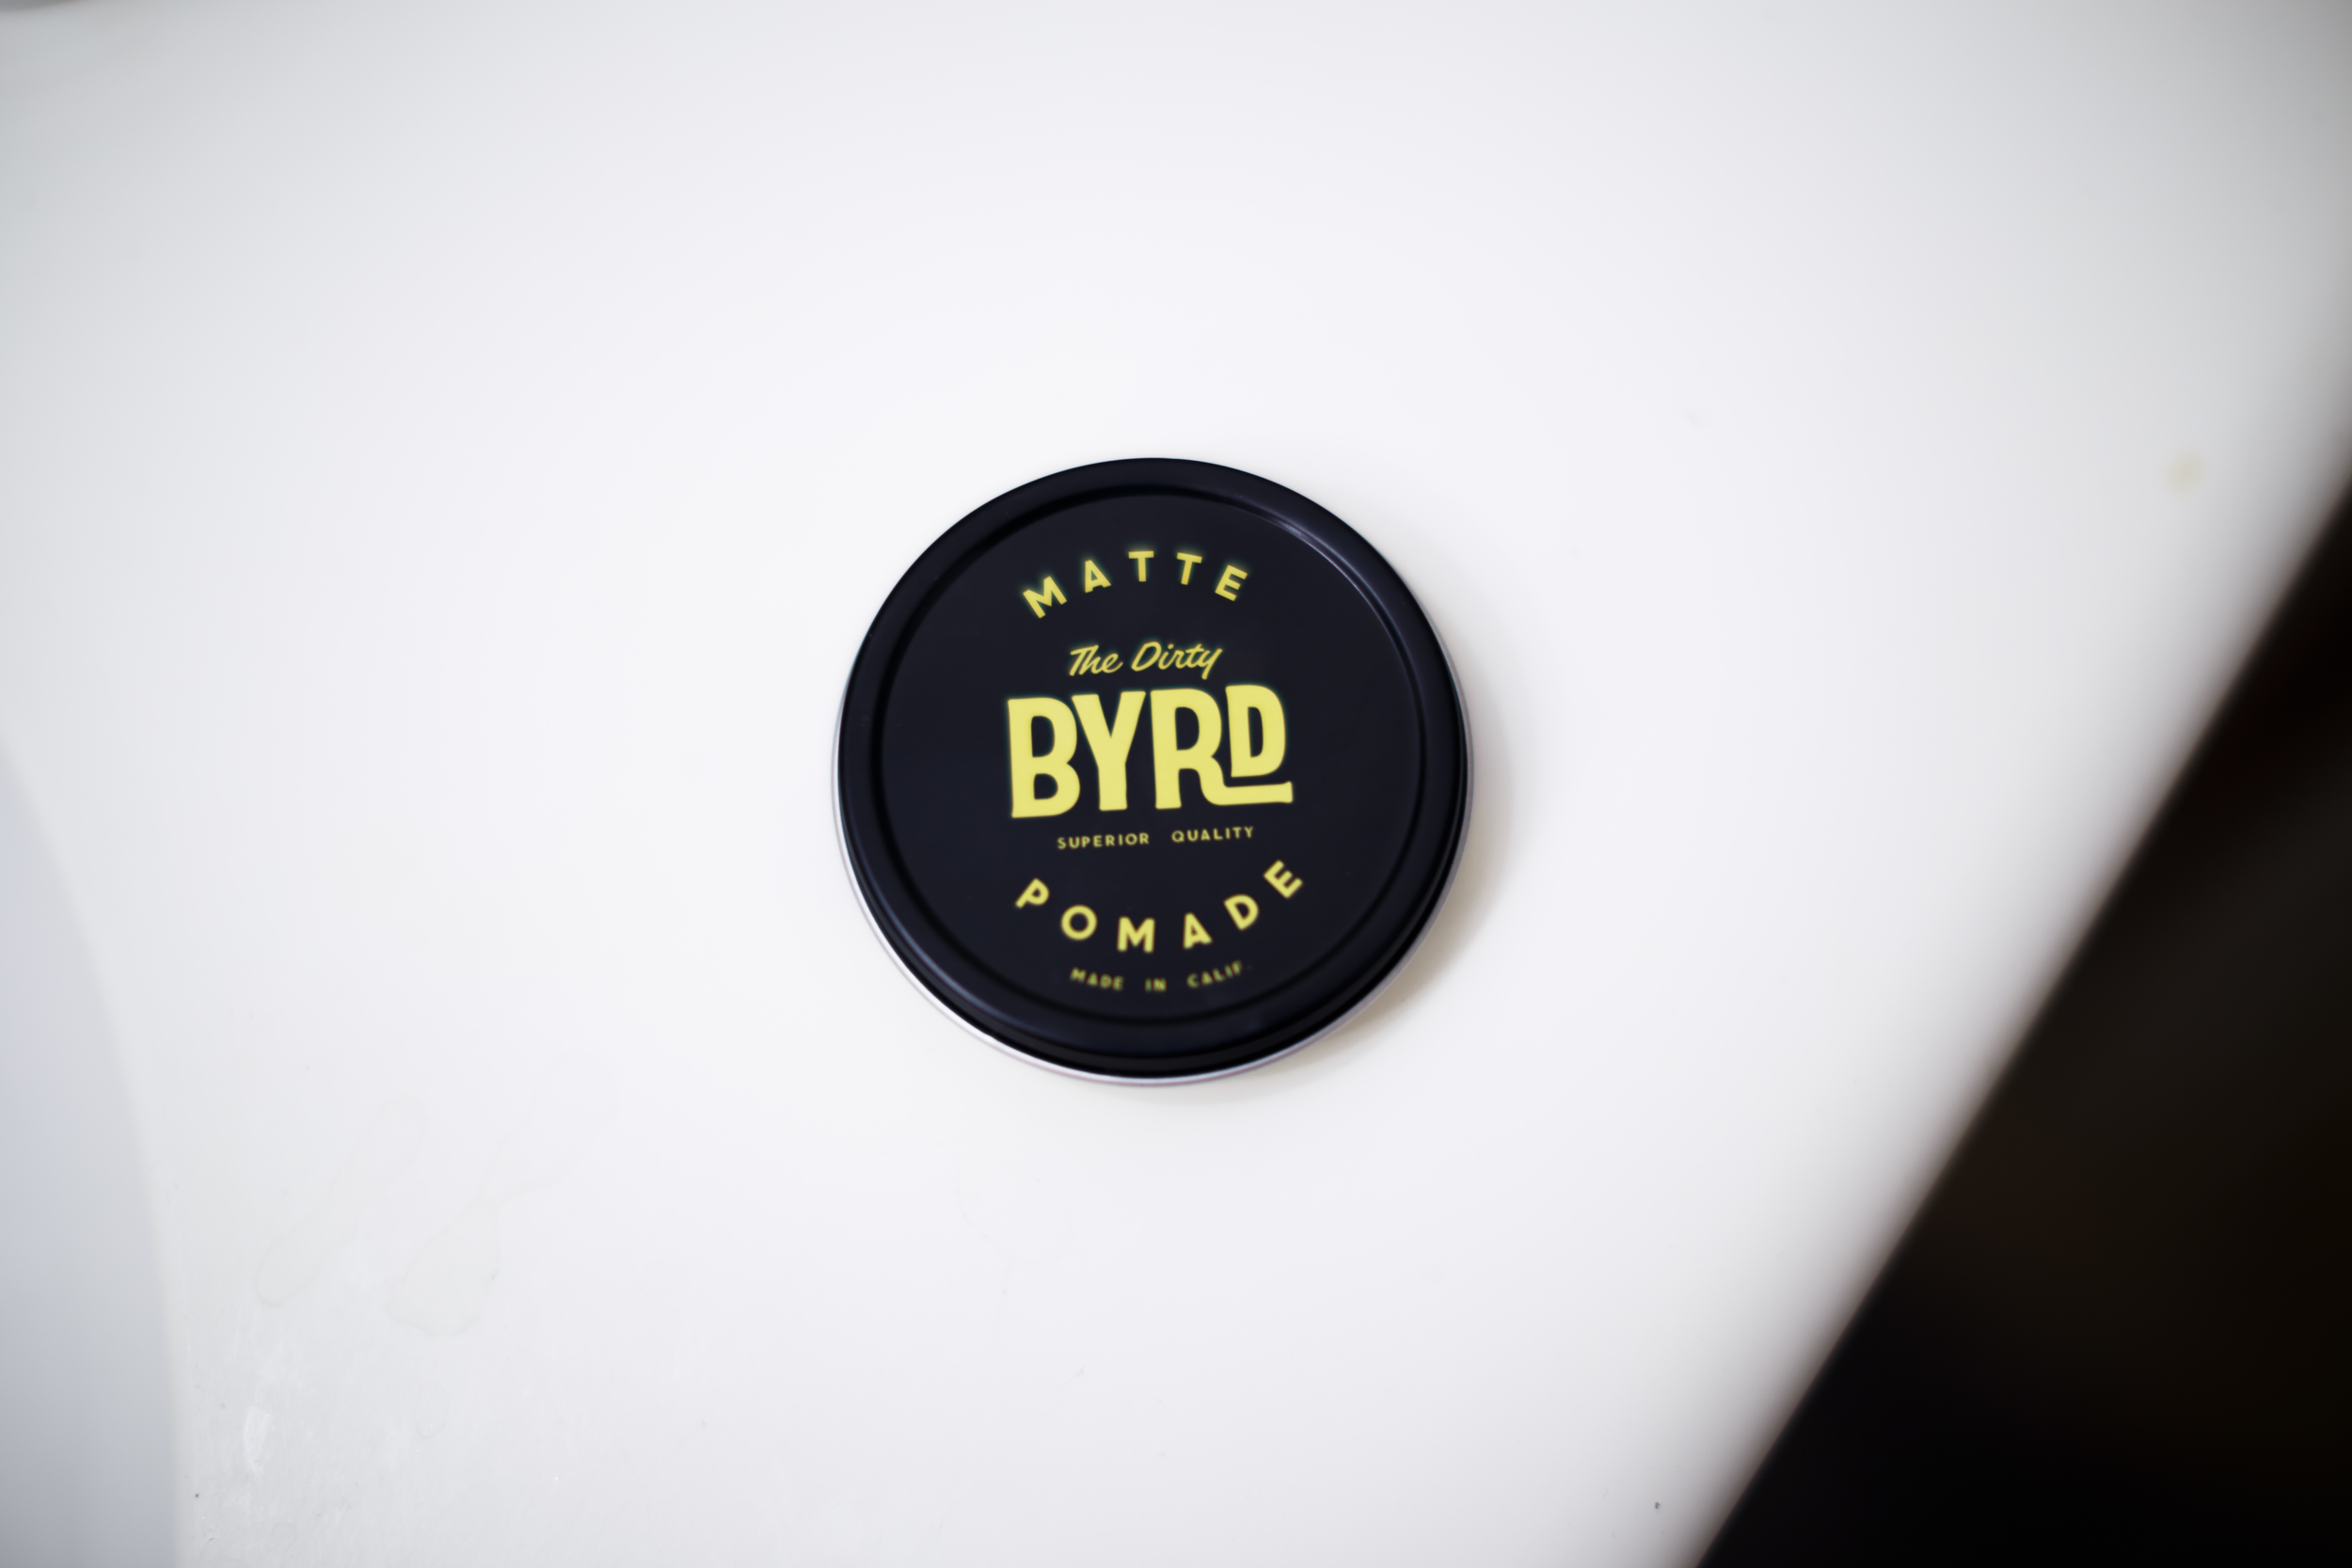 'The Dirty' Byrd Matte Pomade